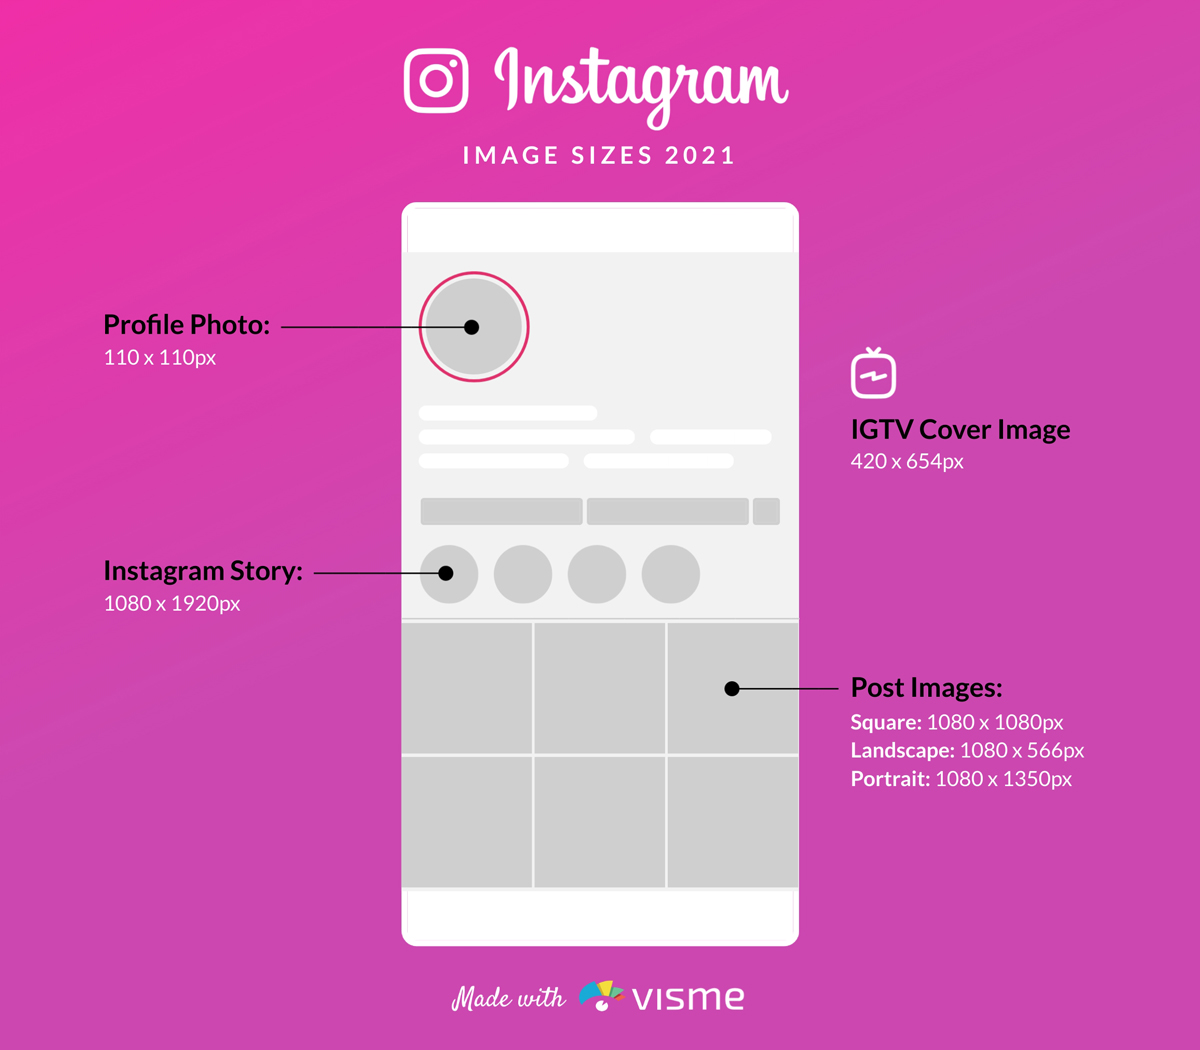 A mockup of Instagram's image sizes.